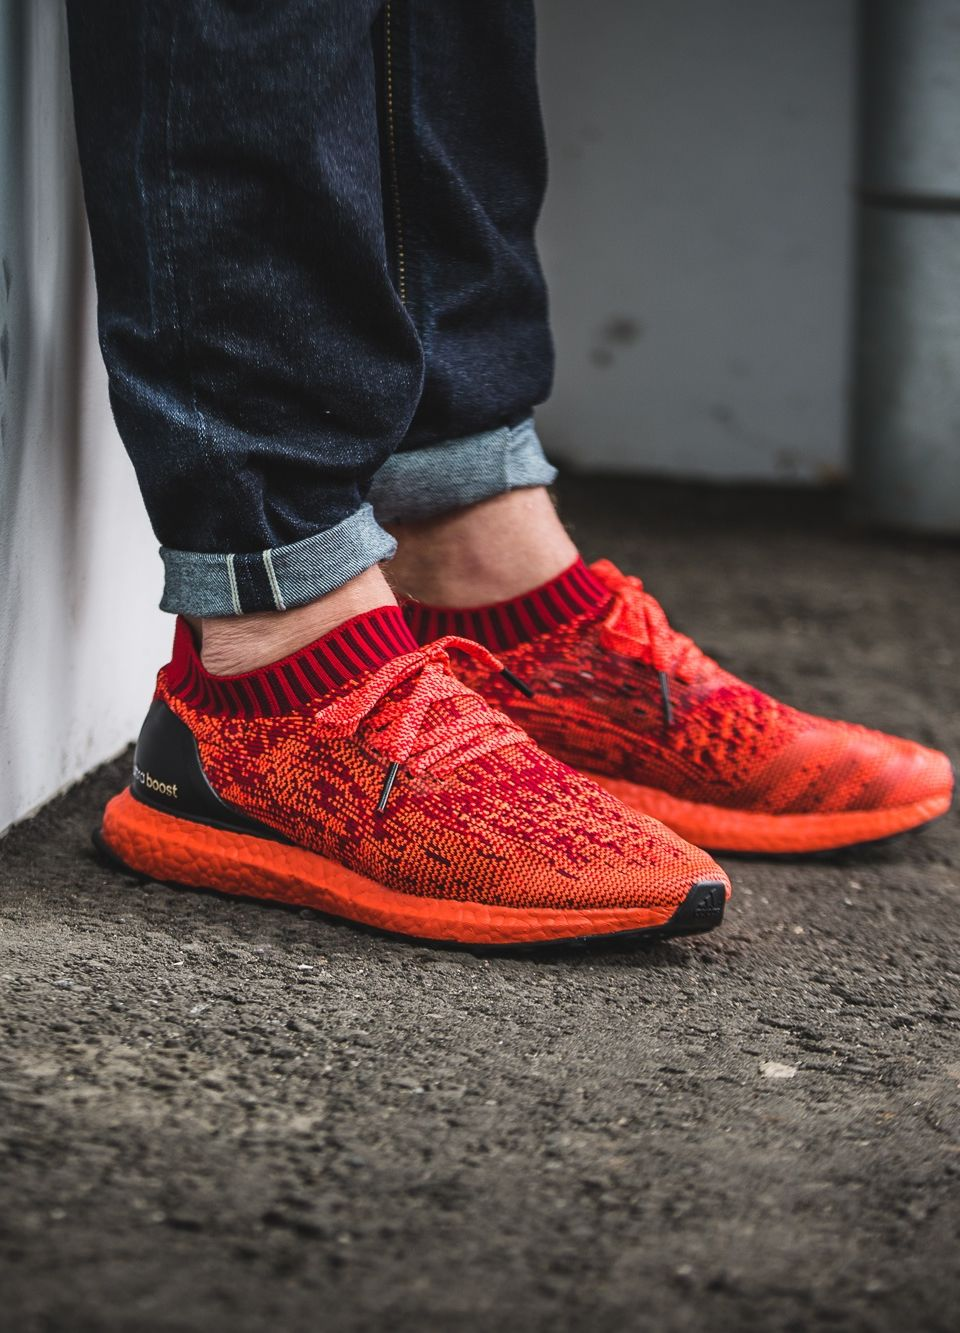 Adidas Ultra Boost Uncaged Red Mens,adidas hoodies online